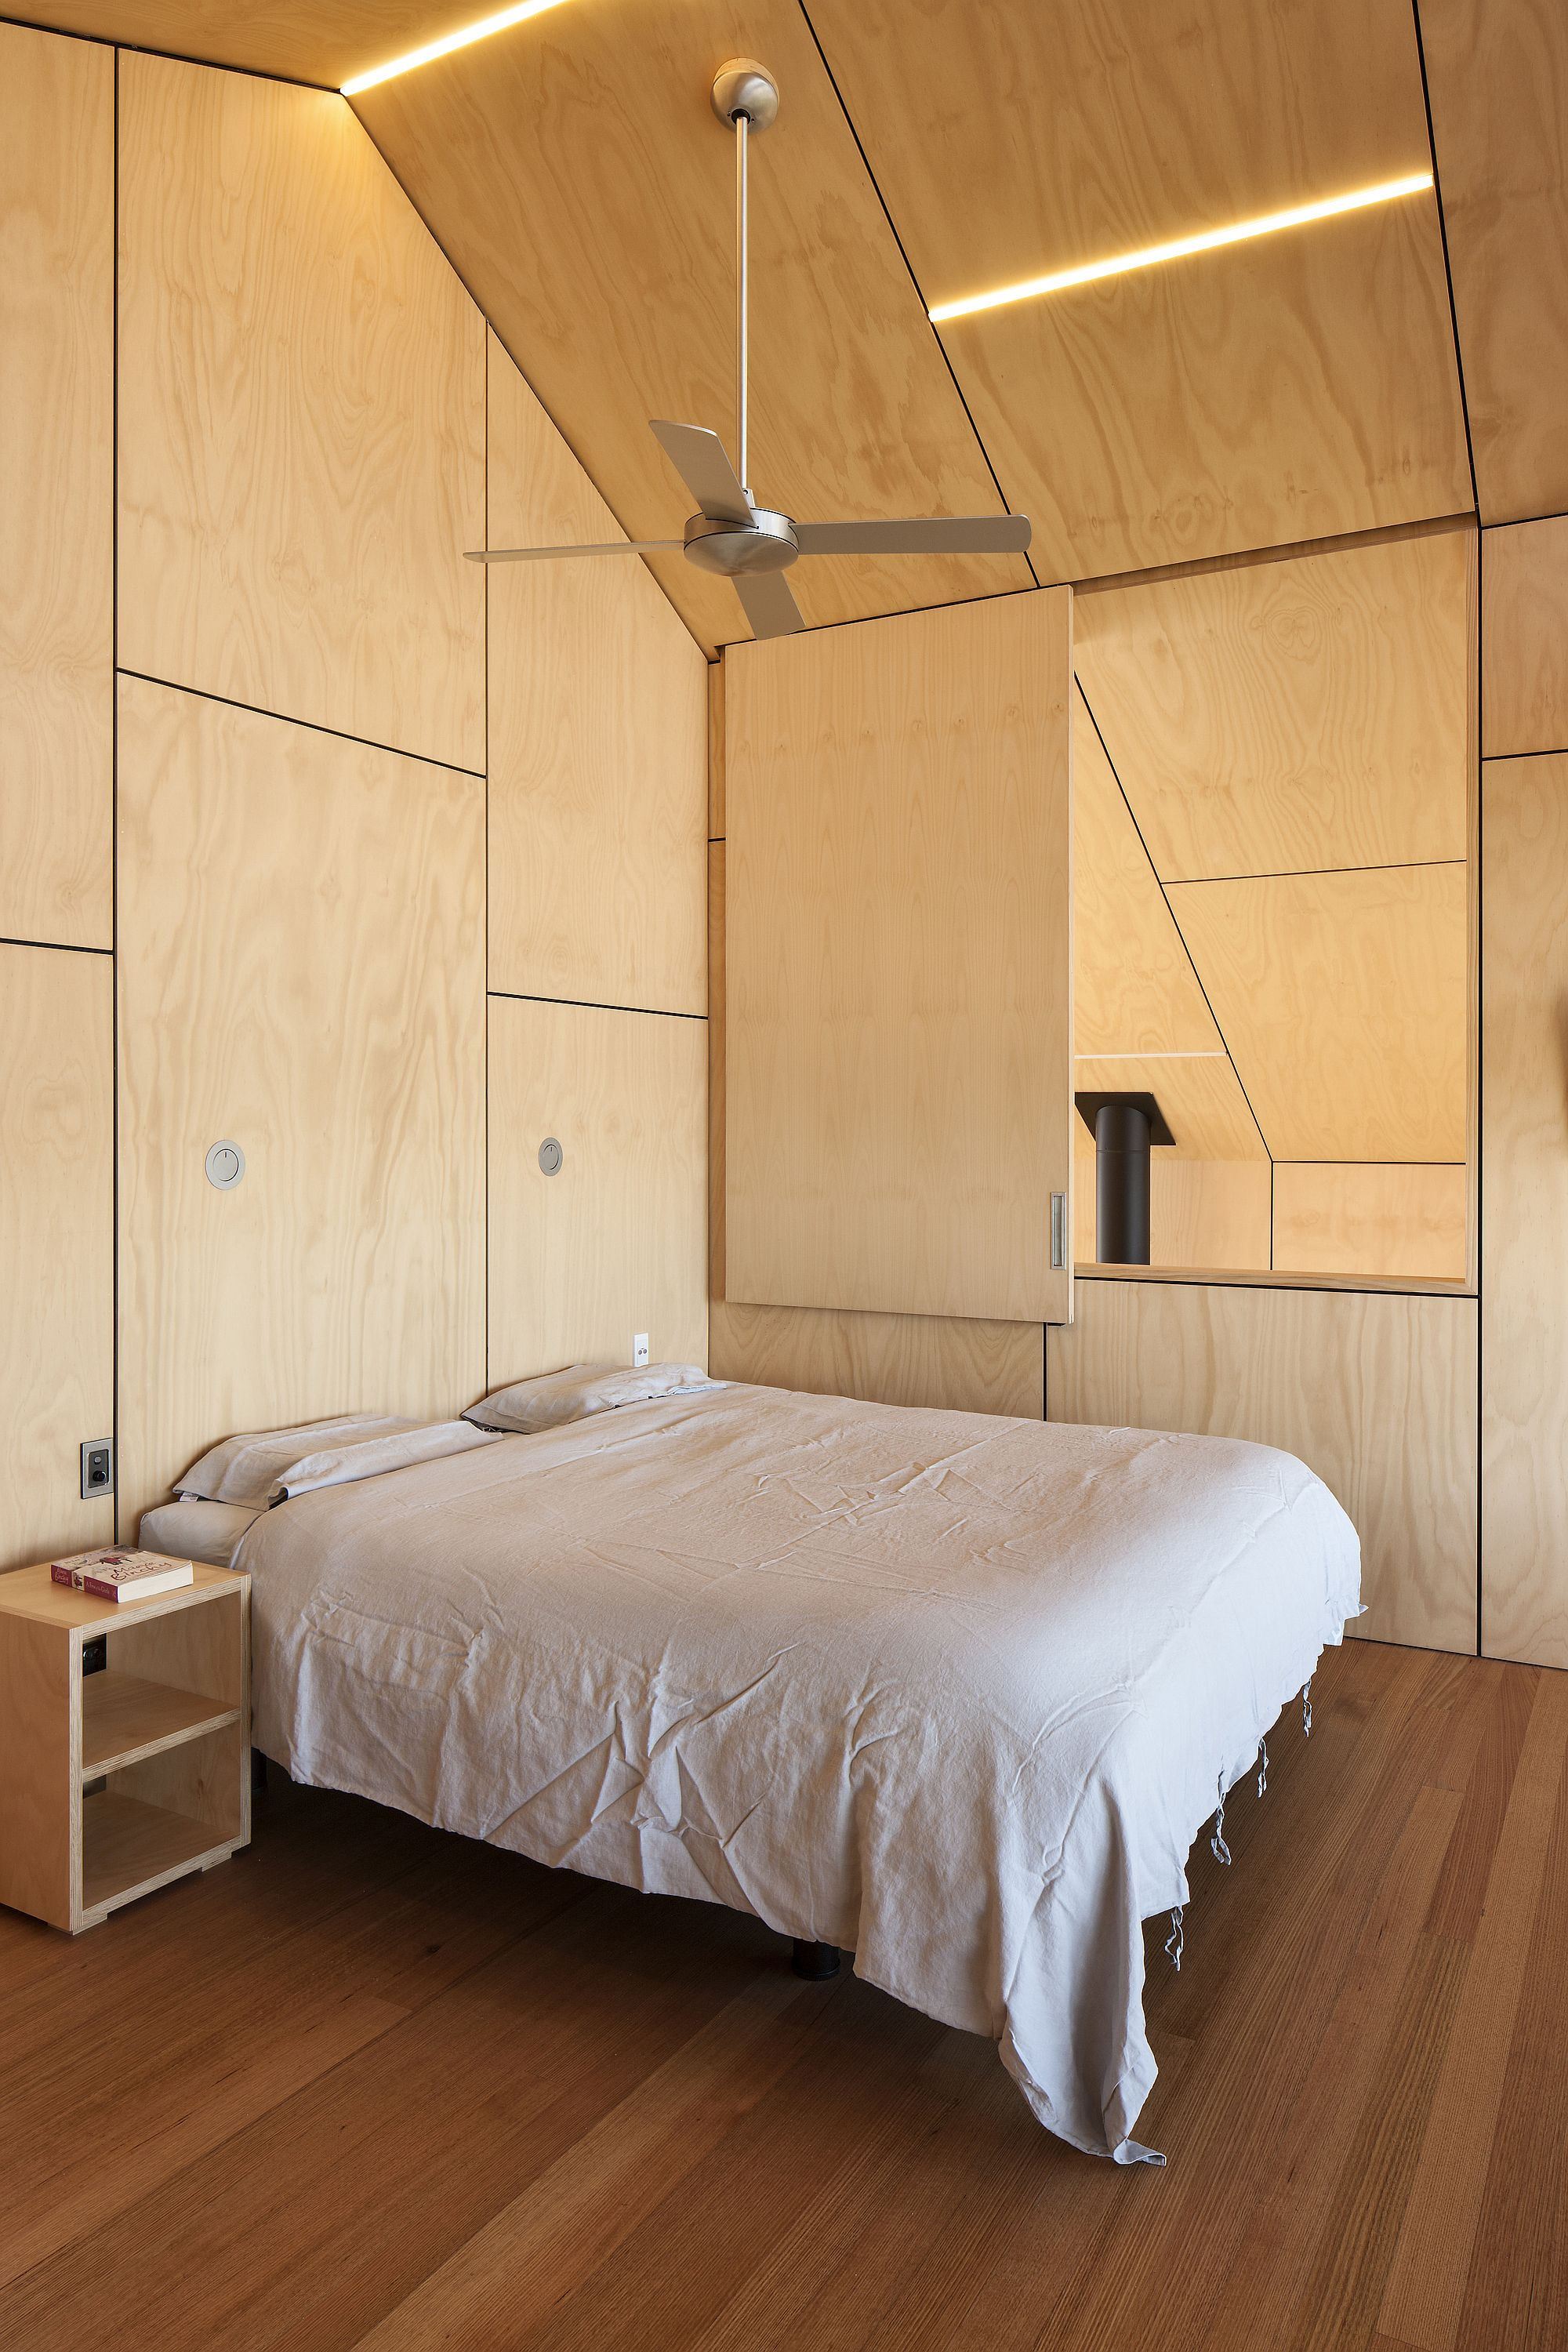 Bedroom feels much more cozier thanks to the wooden panels on walls